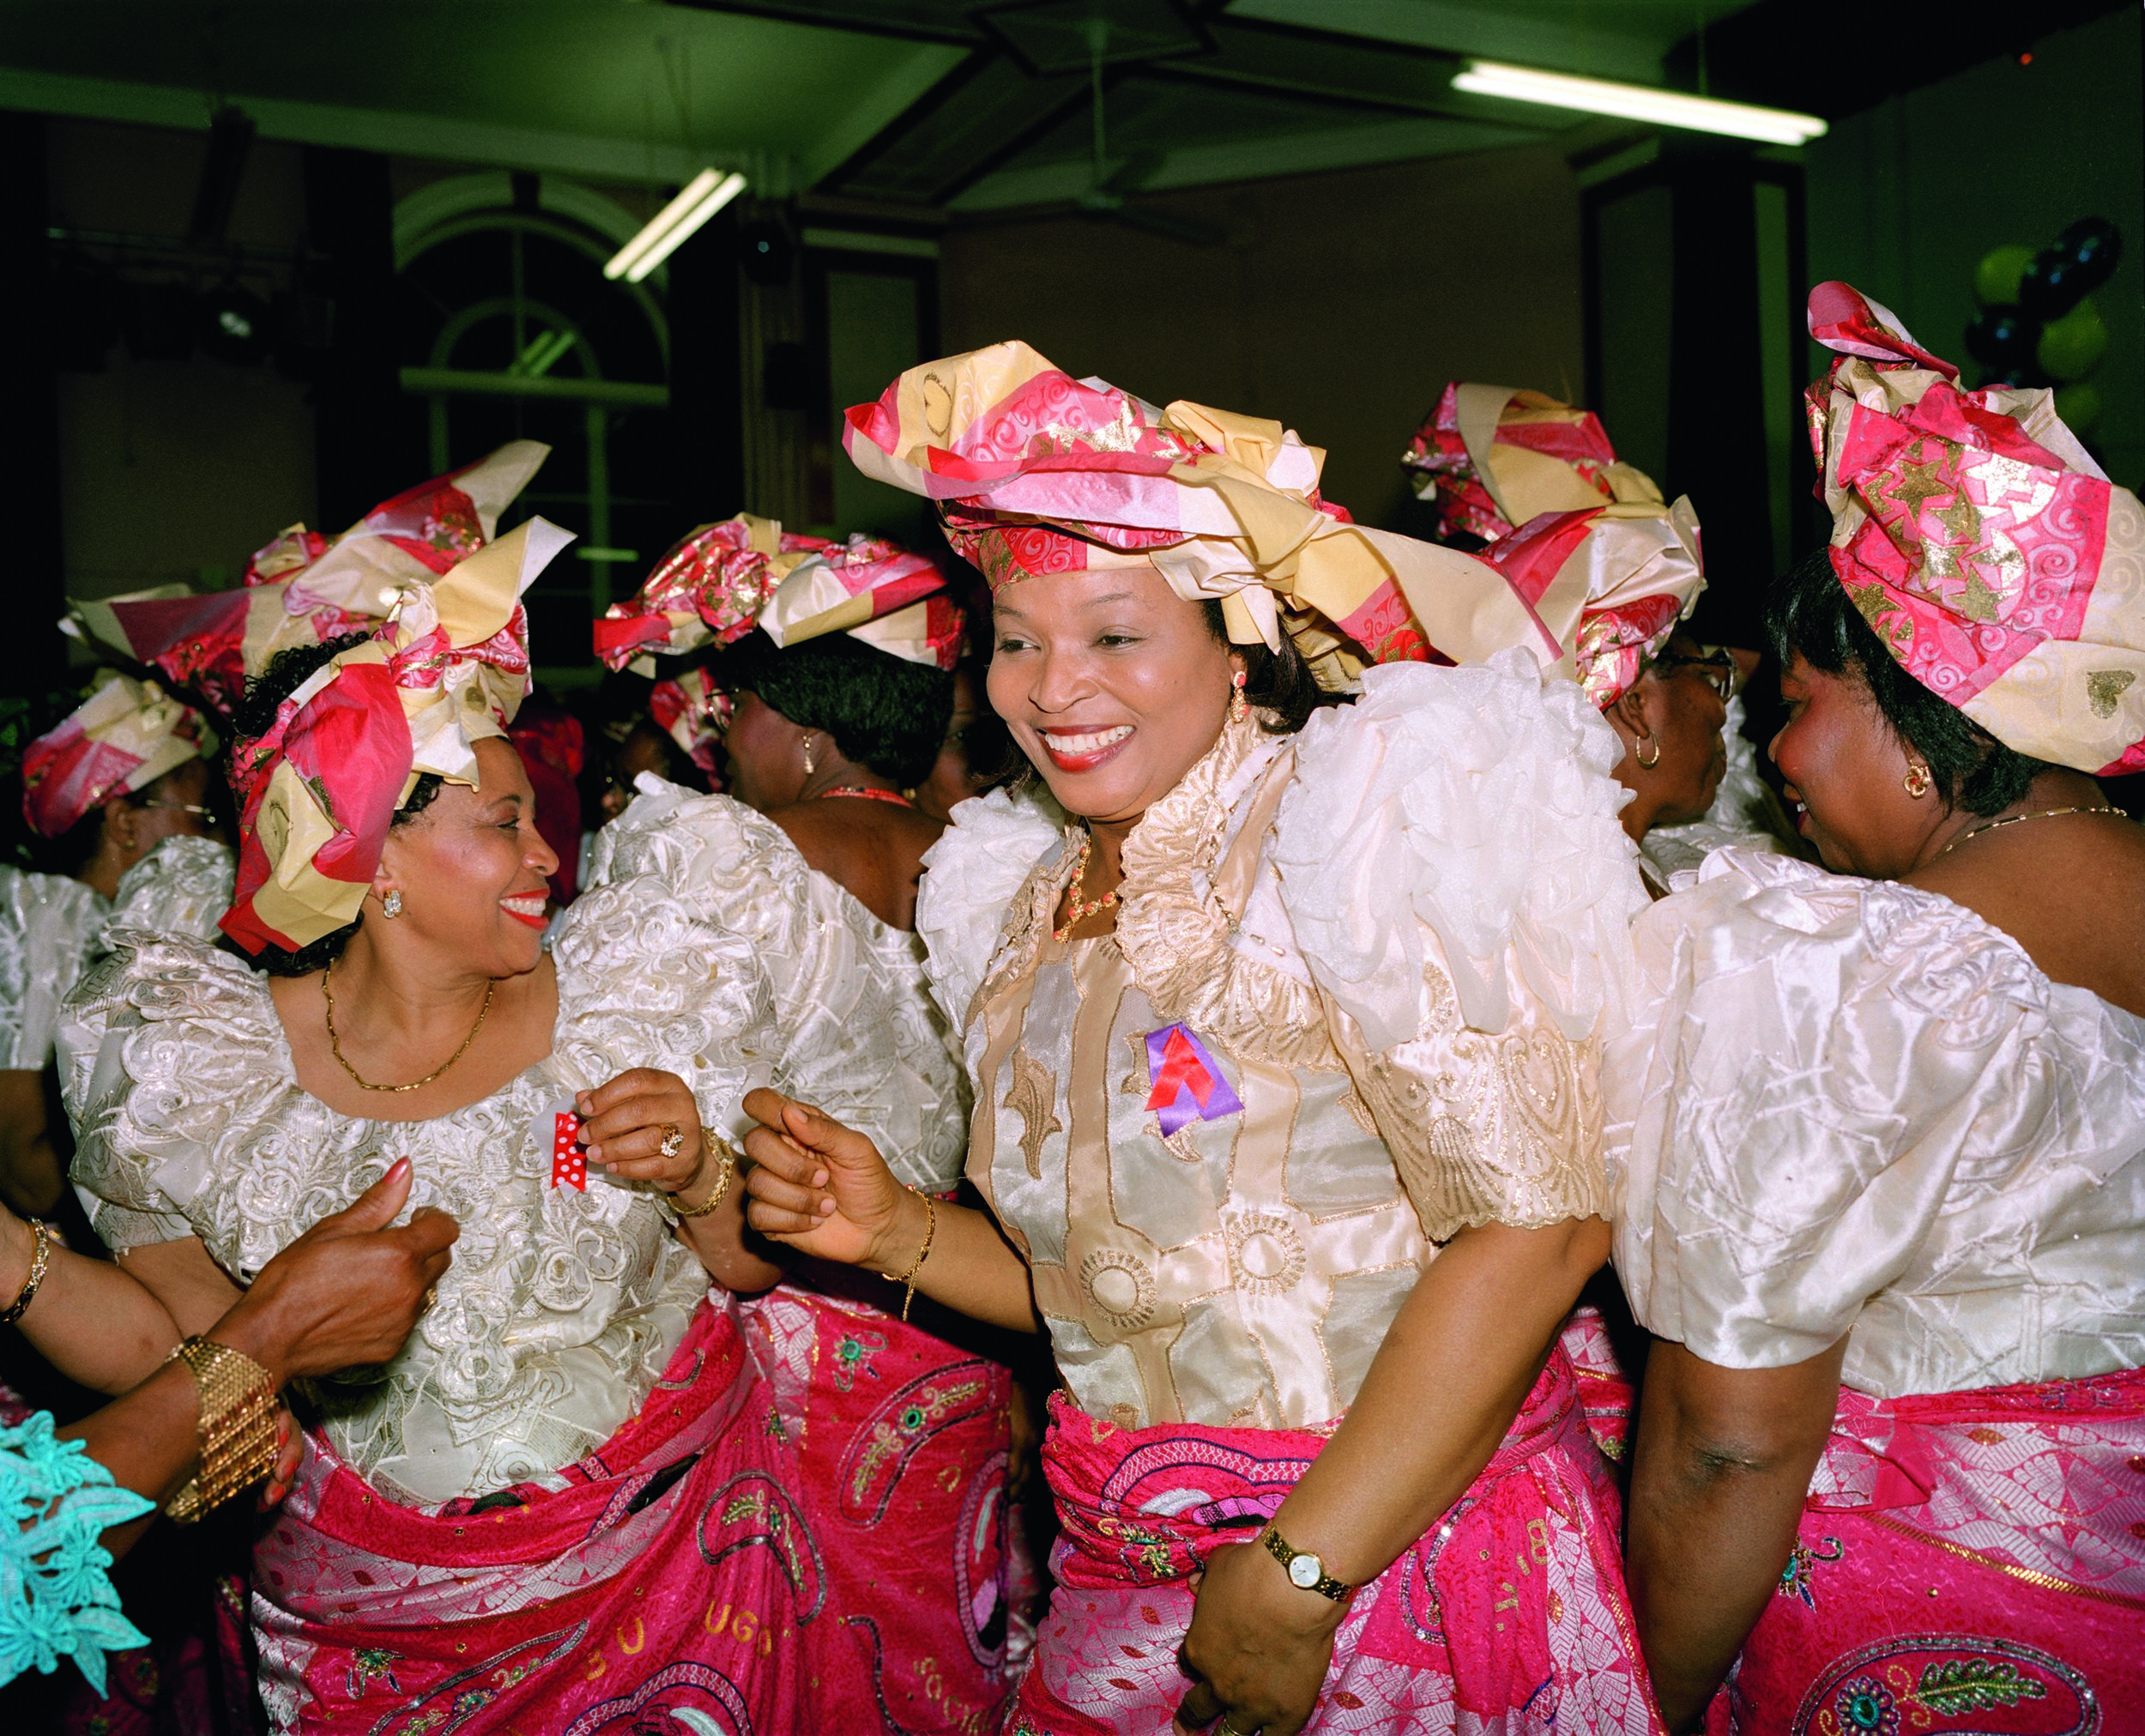 Liz Johnson Artur, Nigerian Party 2, 1995. Courtesy the artist.